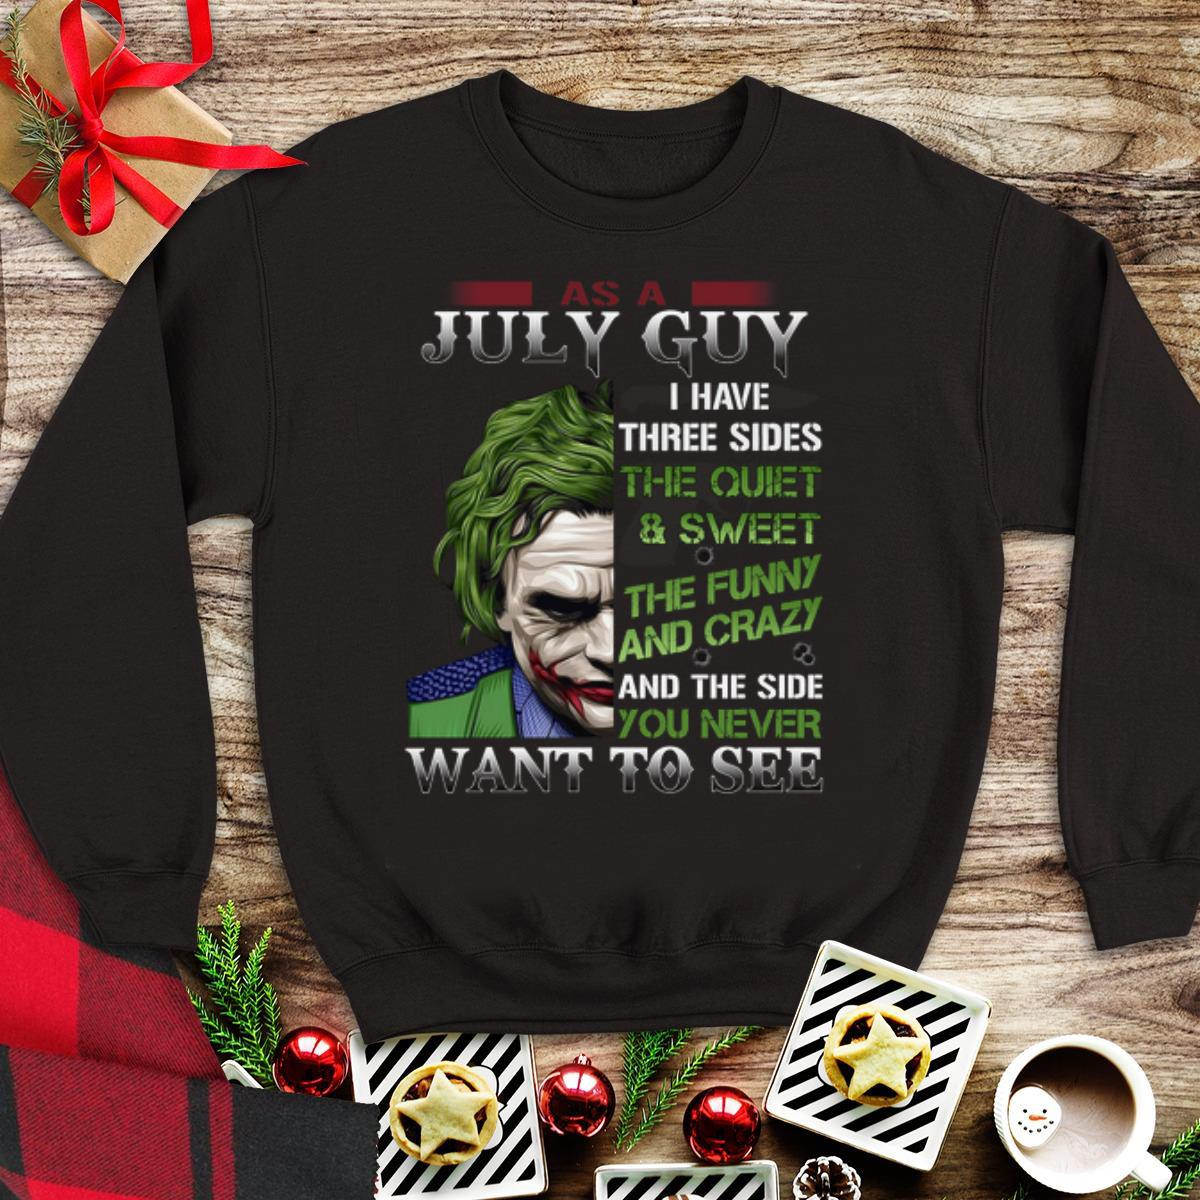 Awesome Joker as a July guy I have three sides and the side you never want to see shirt